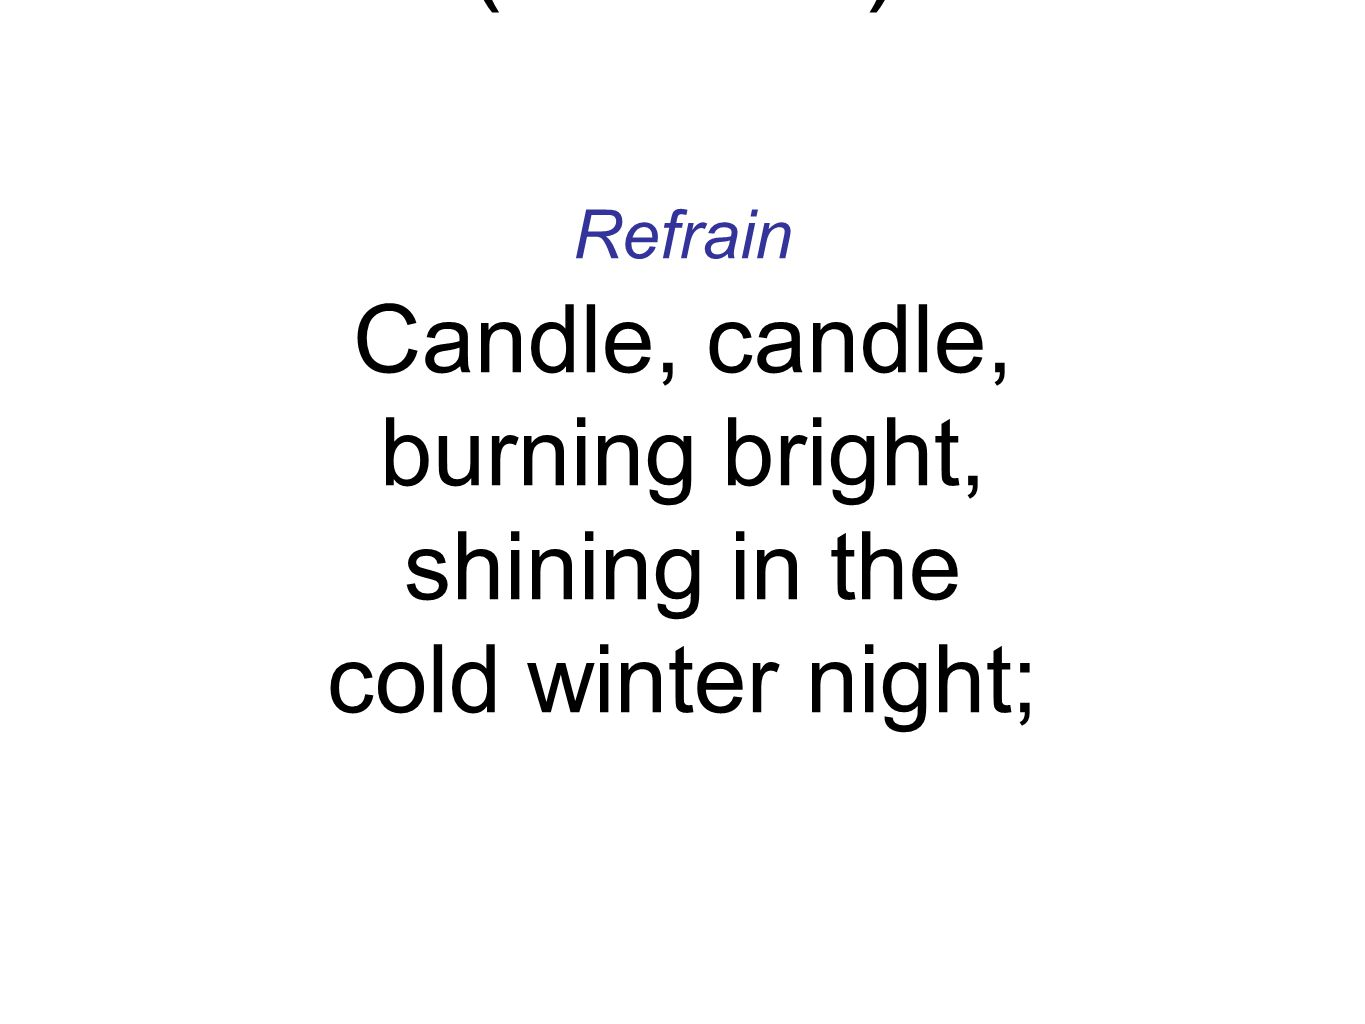 Refrain Candle, candle, burning bright, shining in the cold winter night; Refrain Candle, candle, burning bright, shining in the cold winter night; Light the Advent Candle (Refrain)